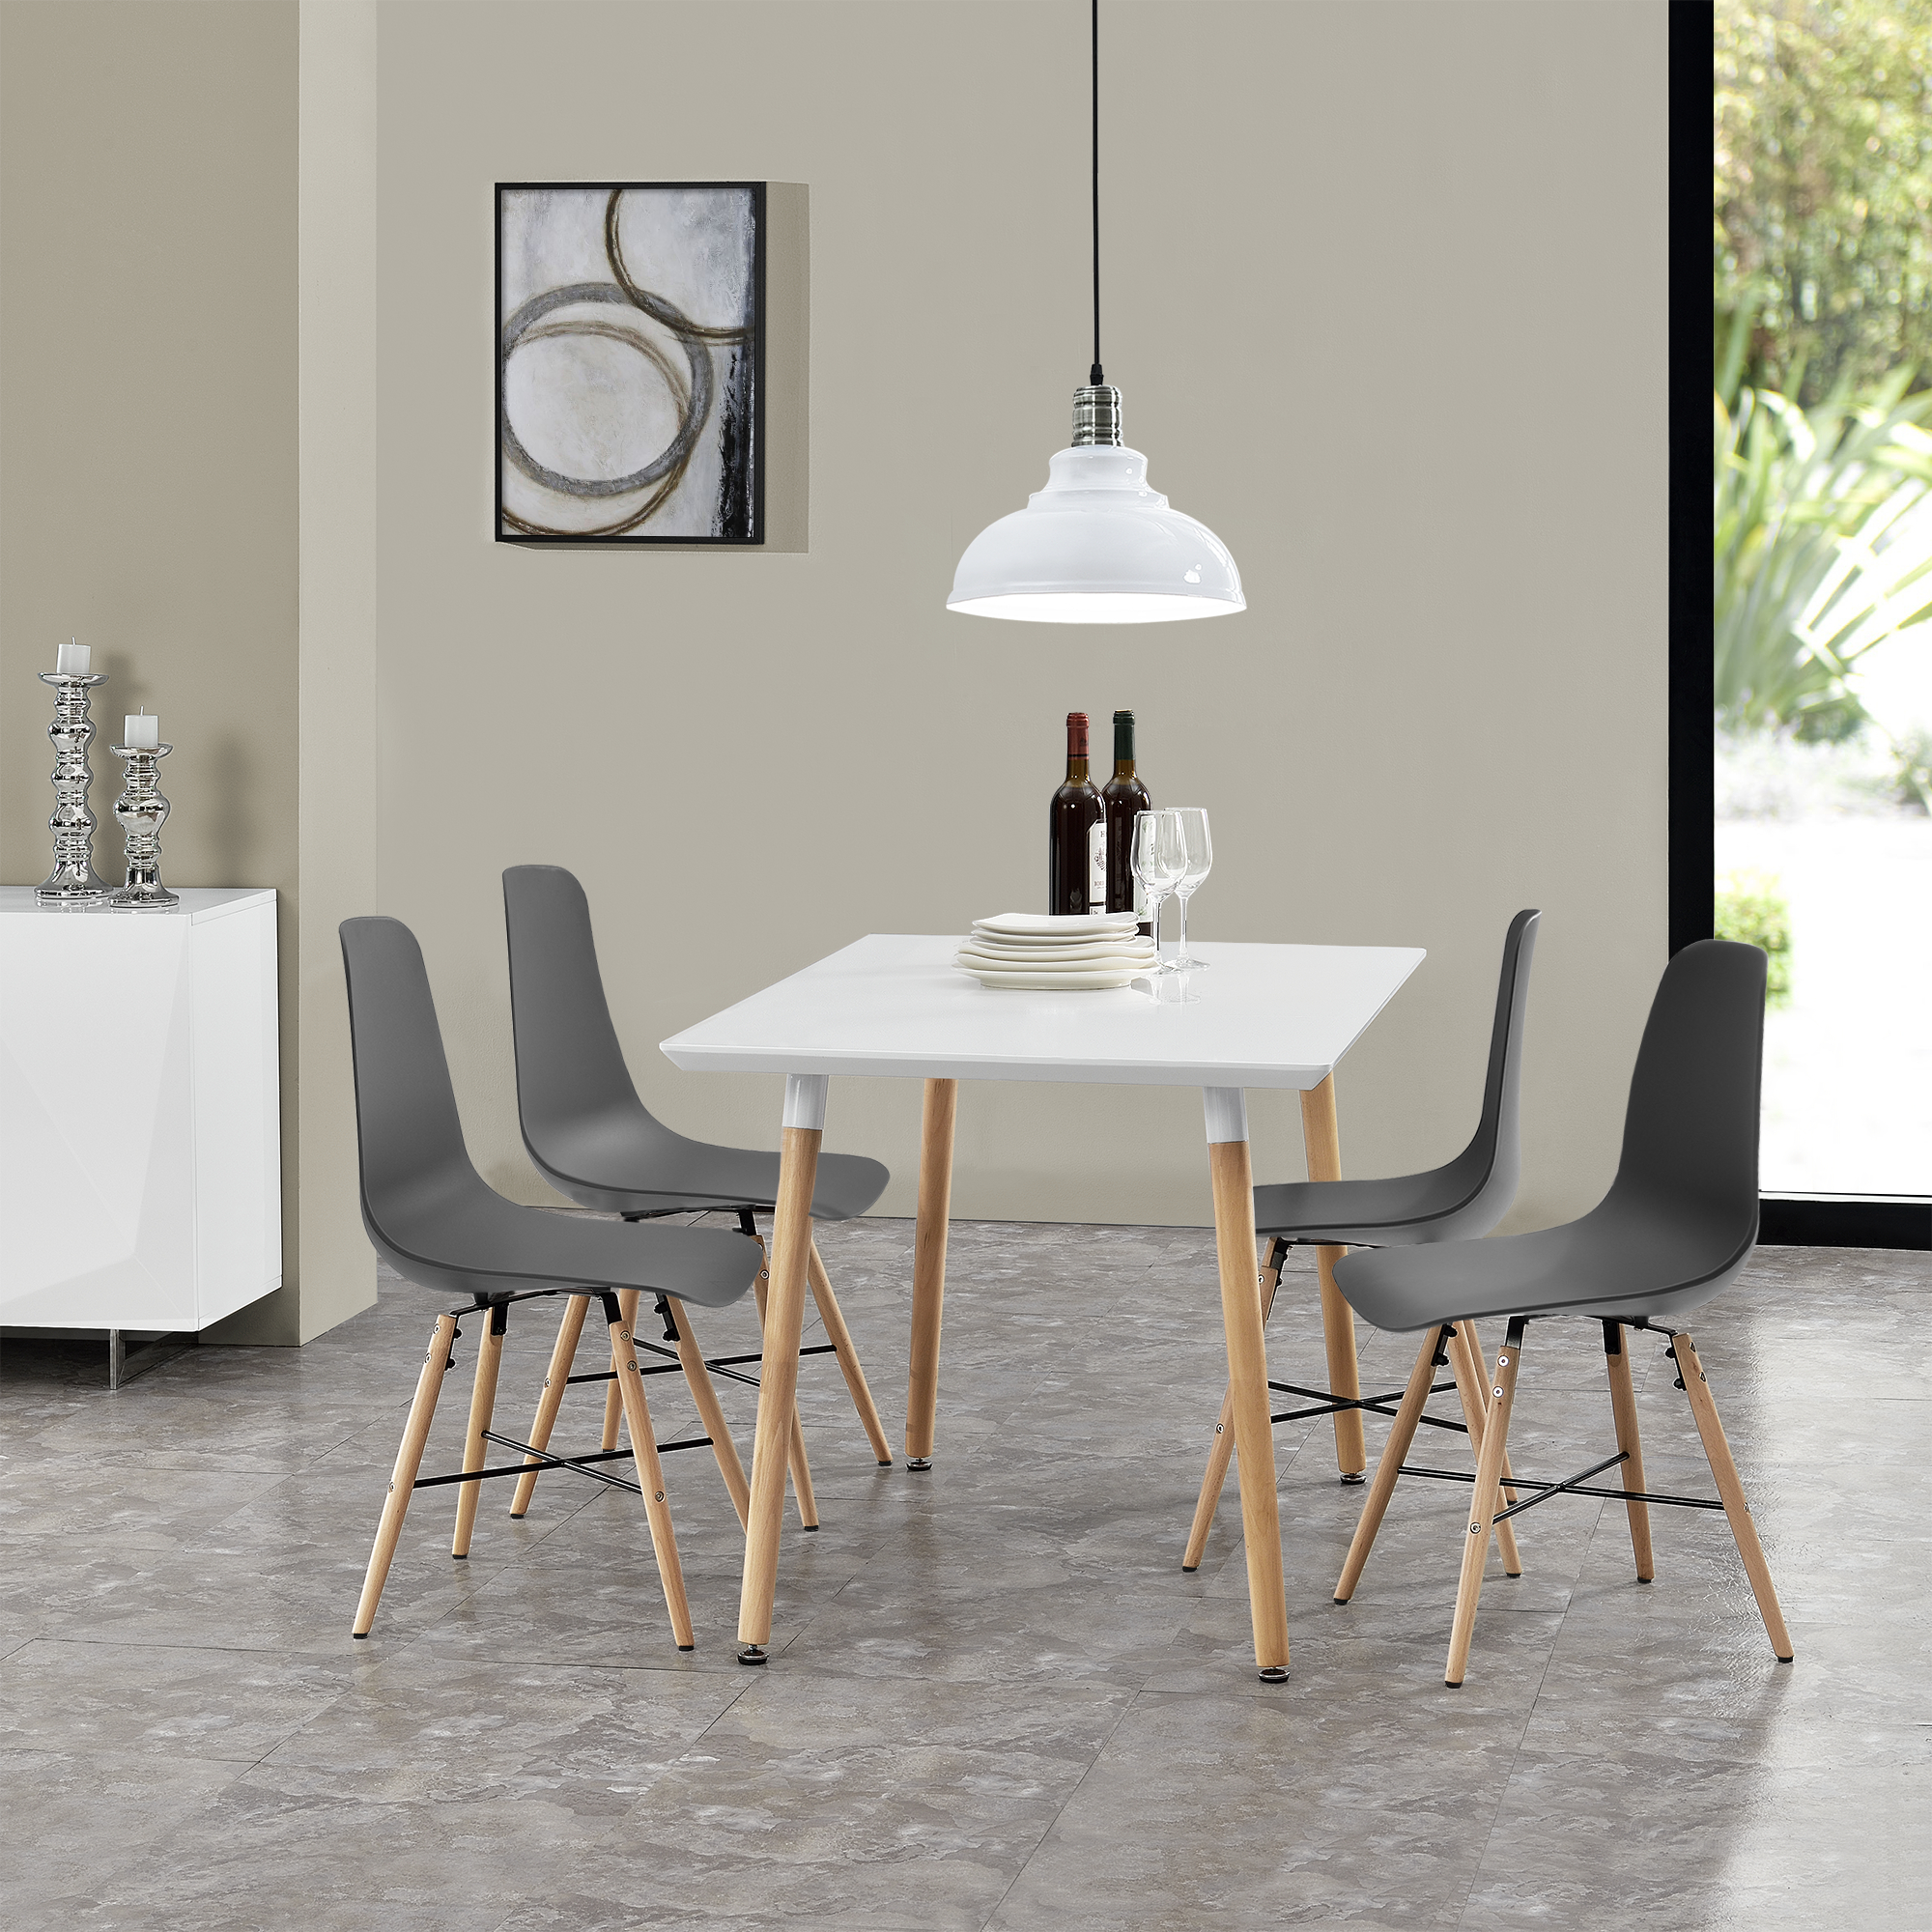 Dining Table With 4 Chairs White/Grey 120x70cm Kitchen